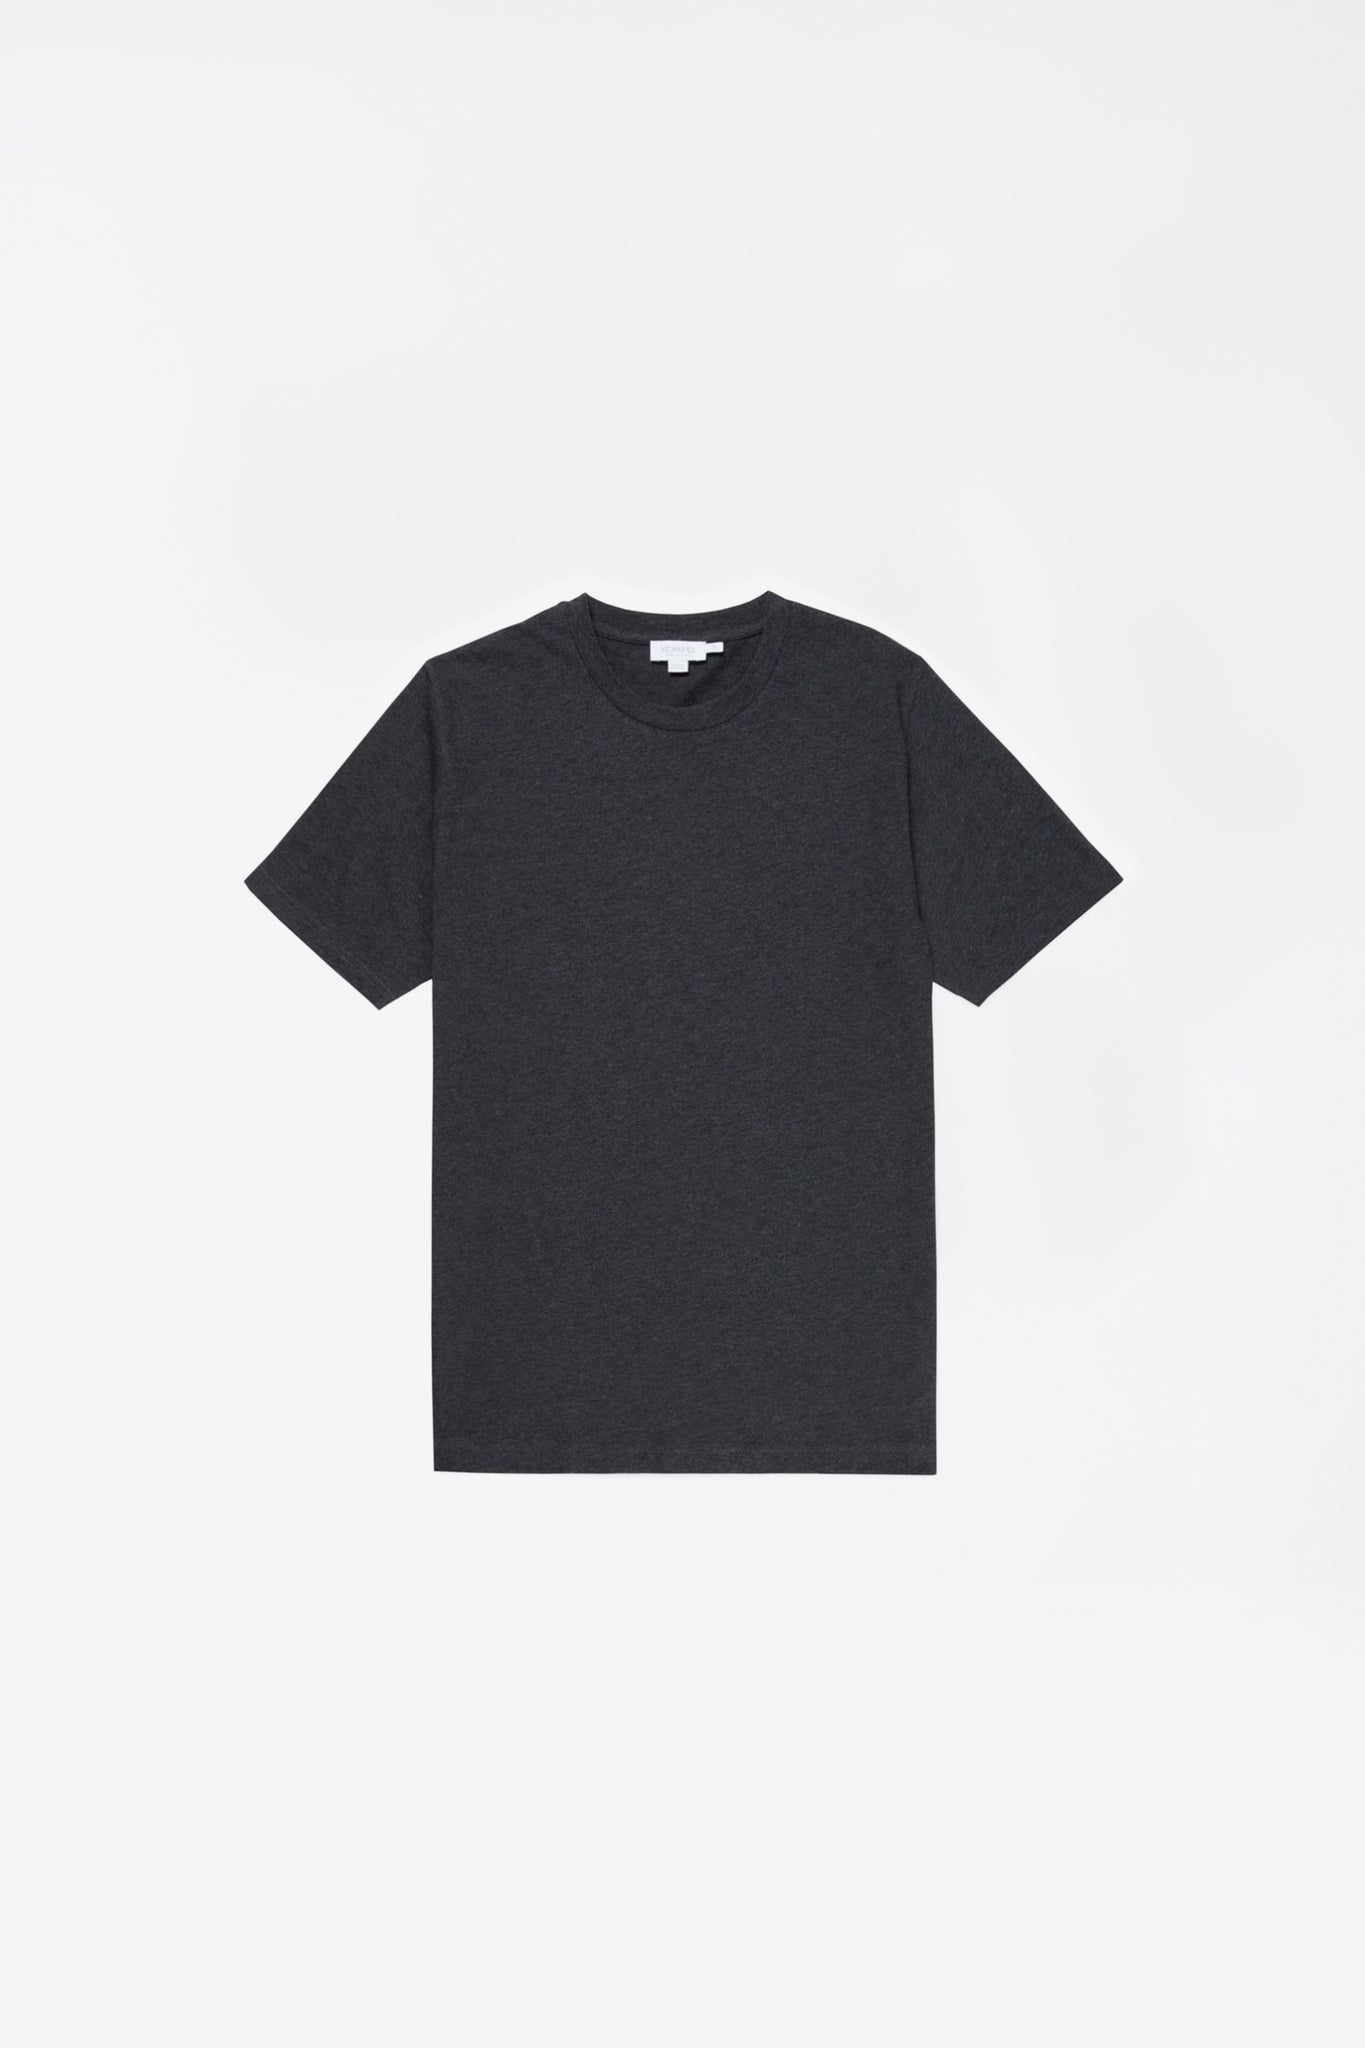 Cotton Riviera T-shirt charcoal